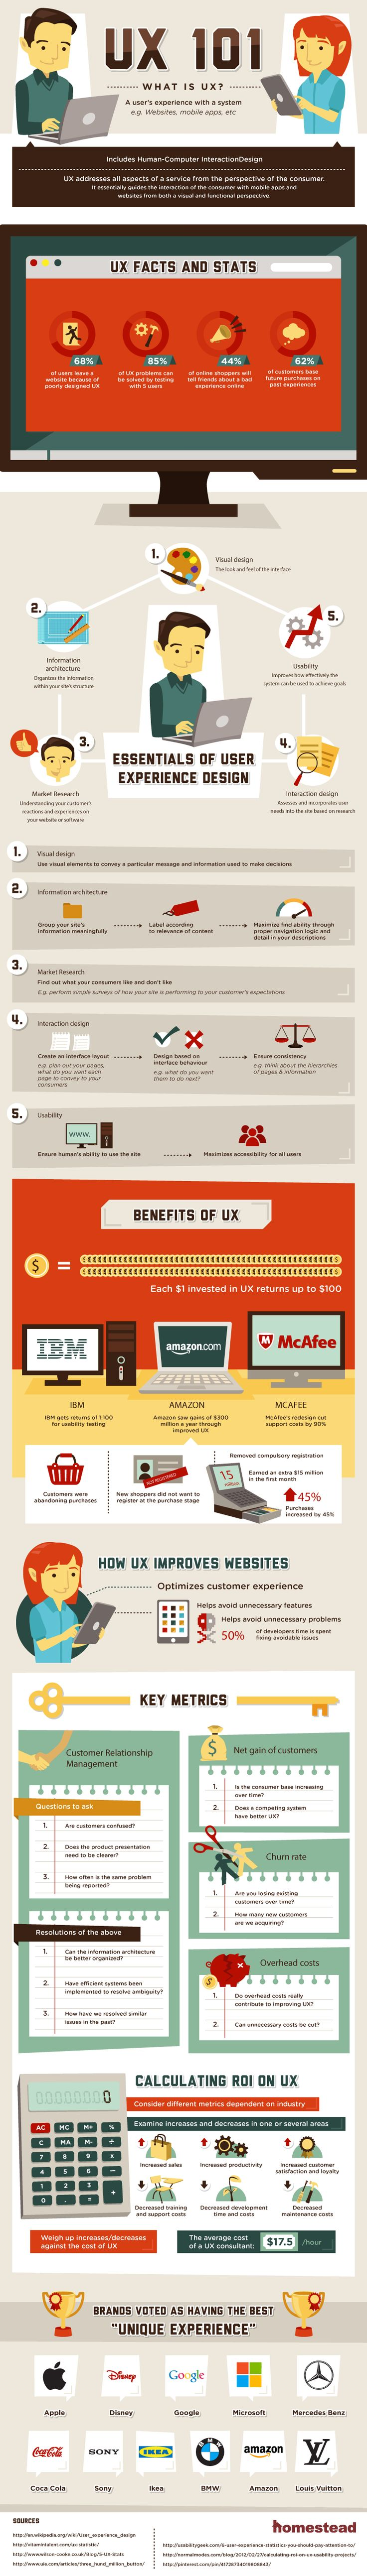 What is User Experience (UX)? | Infographic